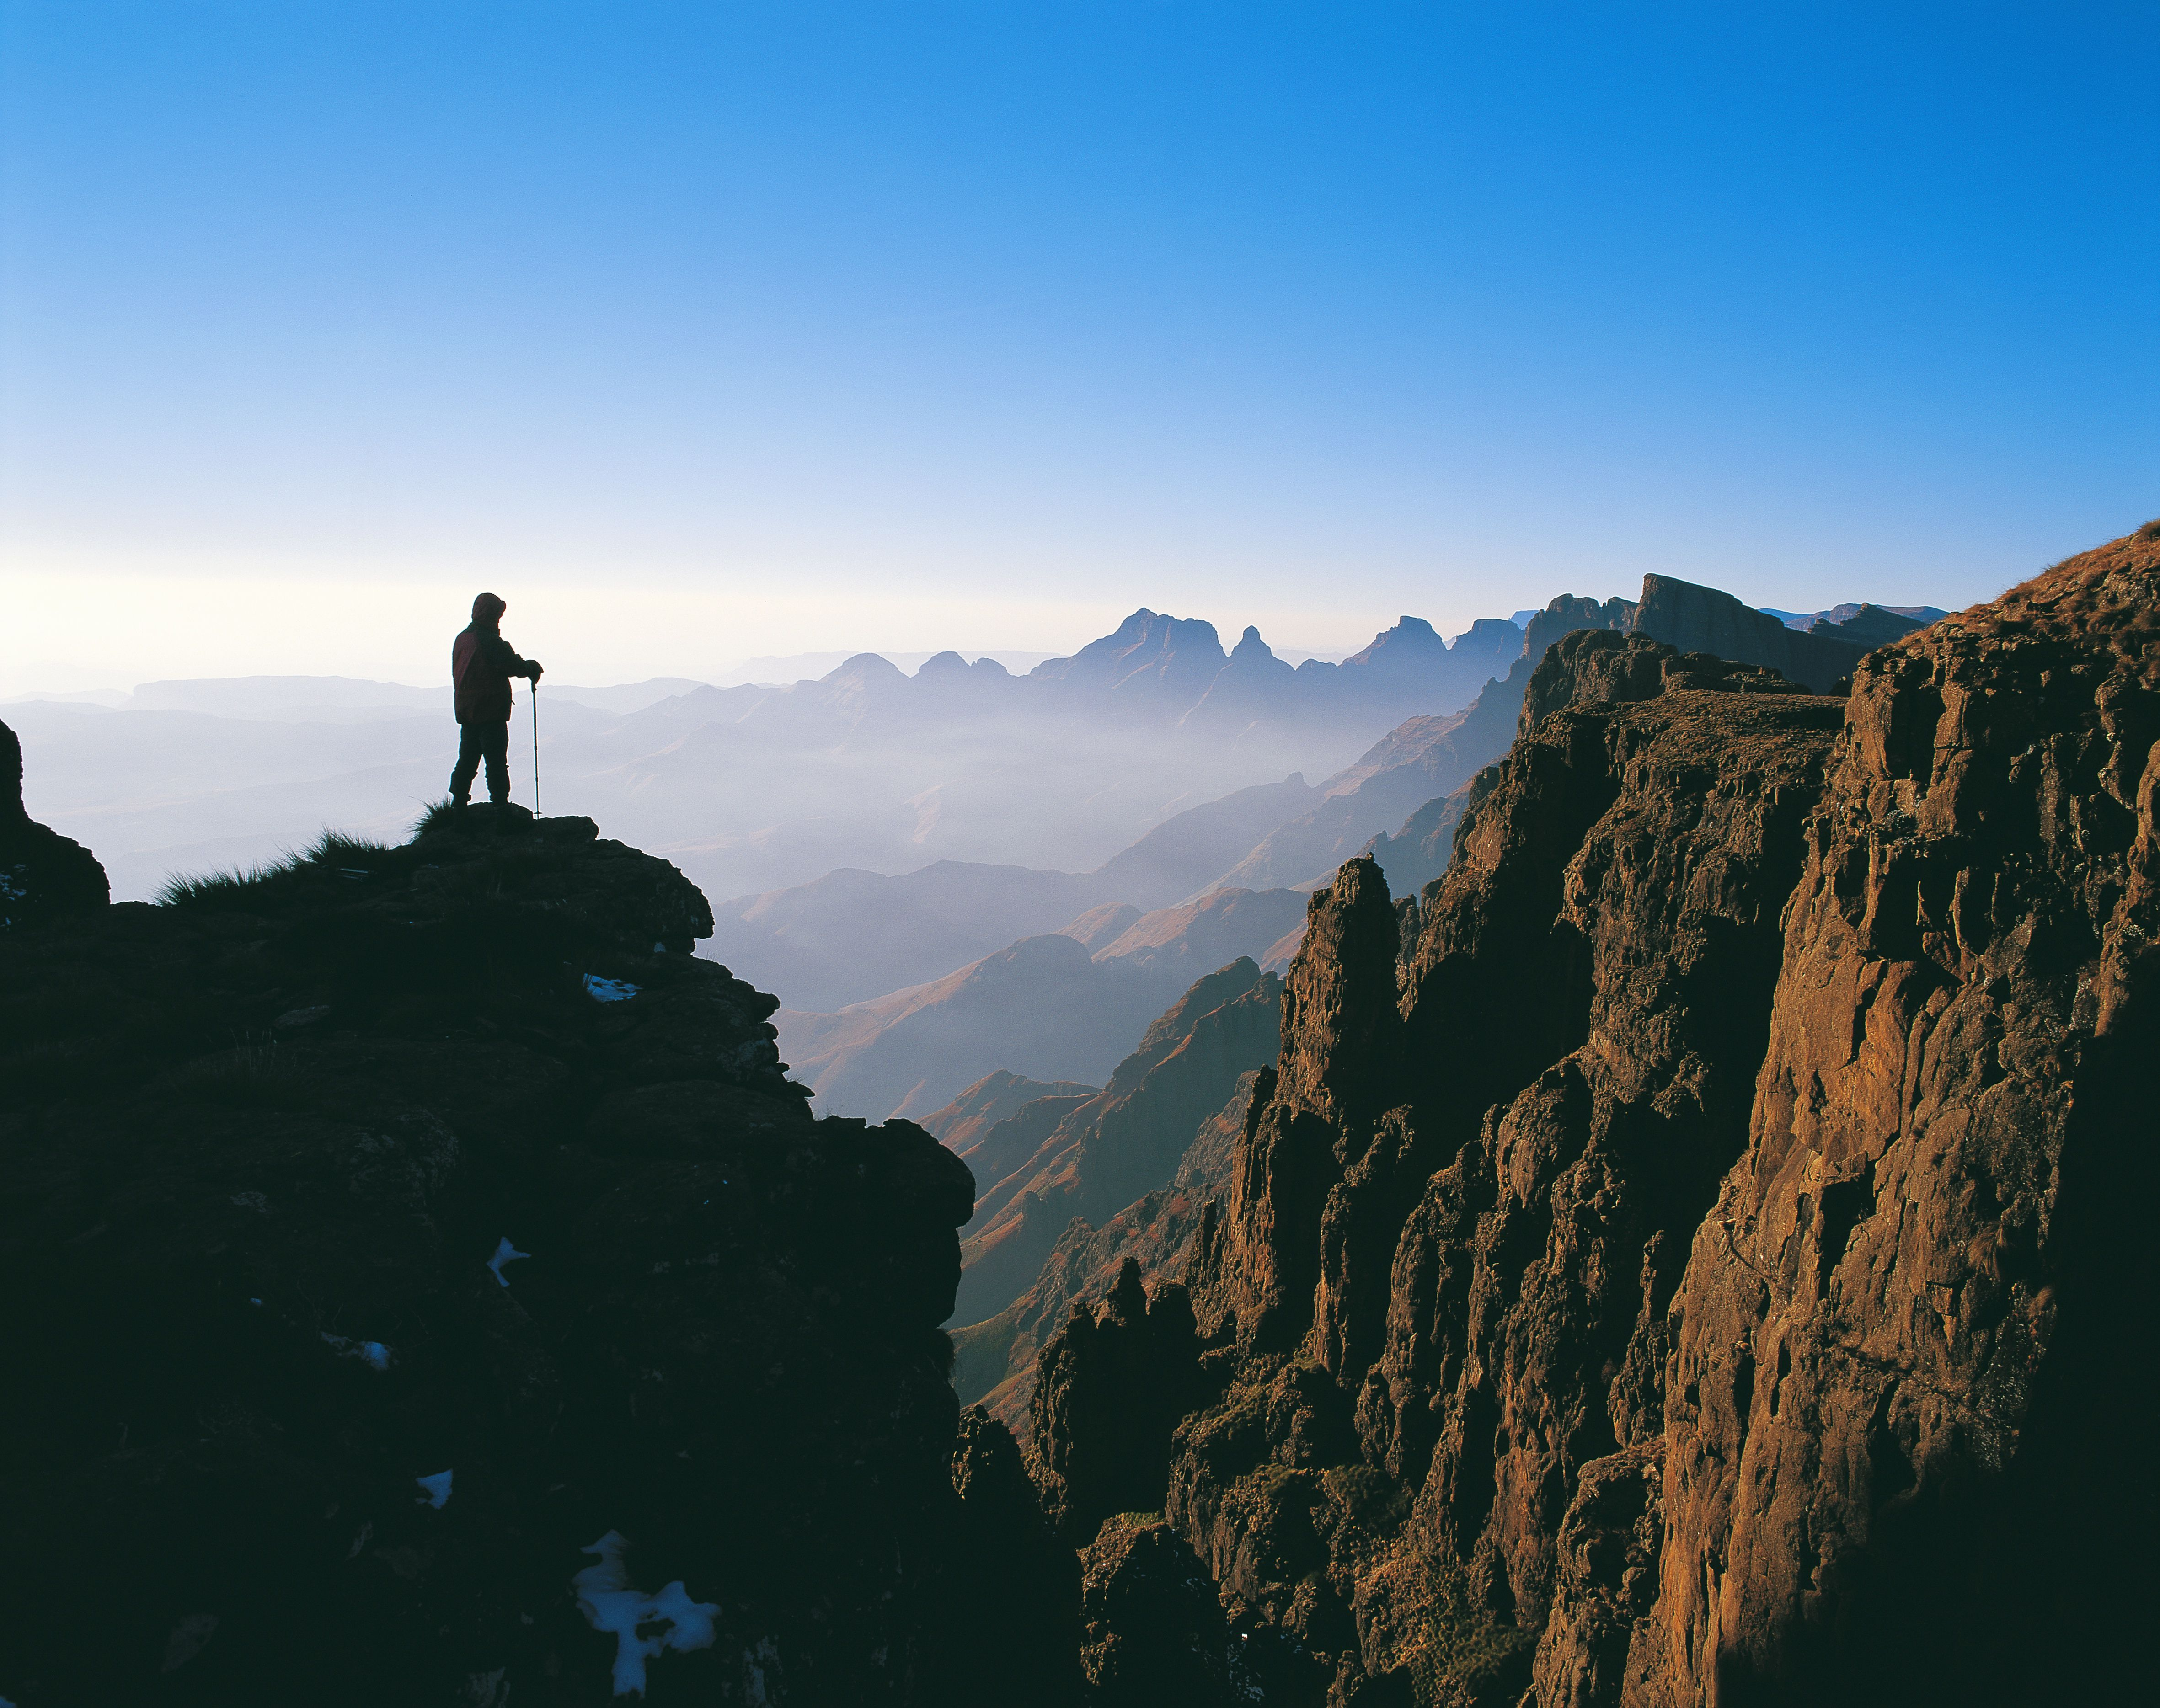 Silhouette of a Hiker Overlooking a Misty Mountain Range